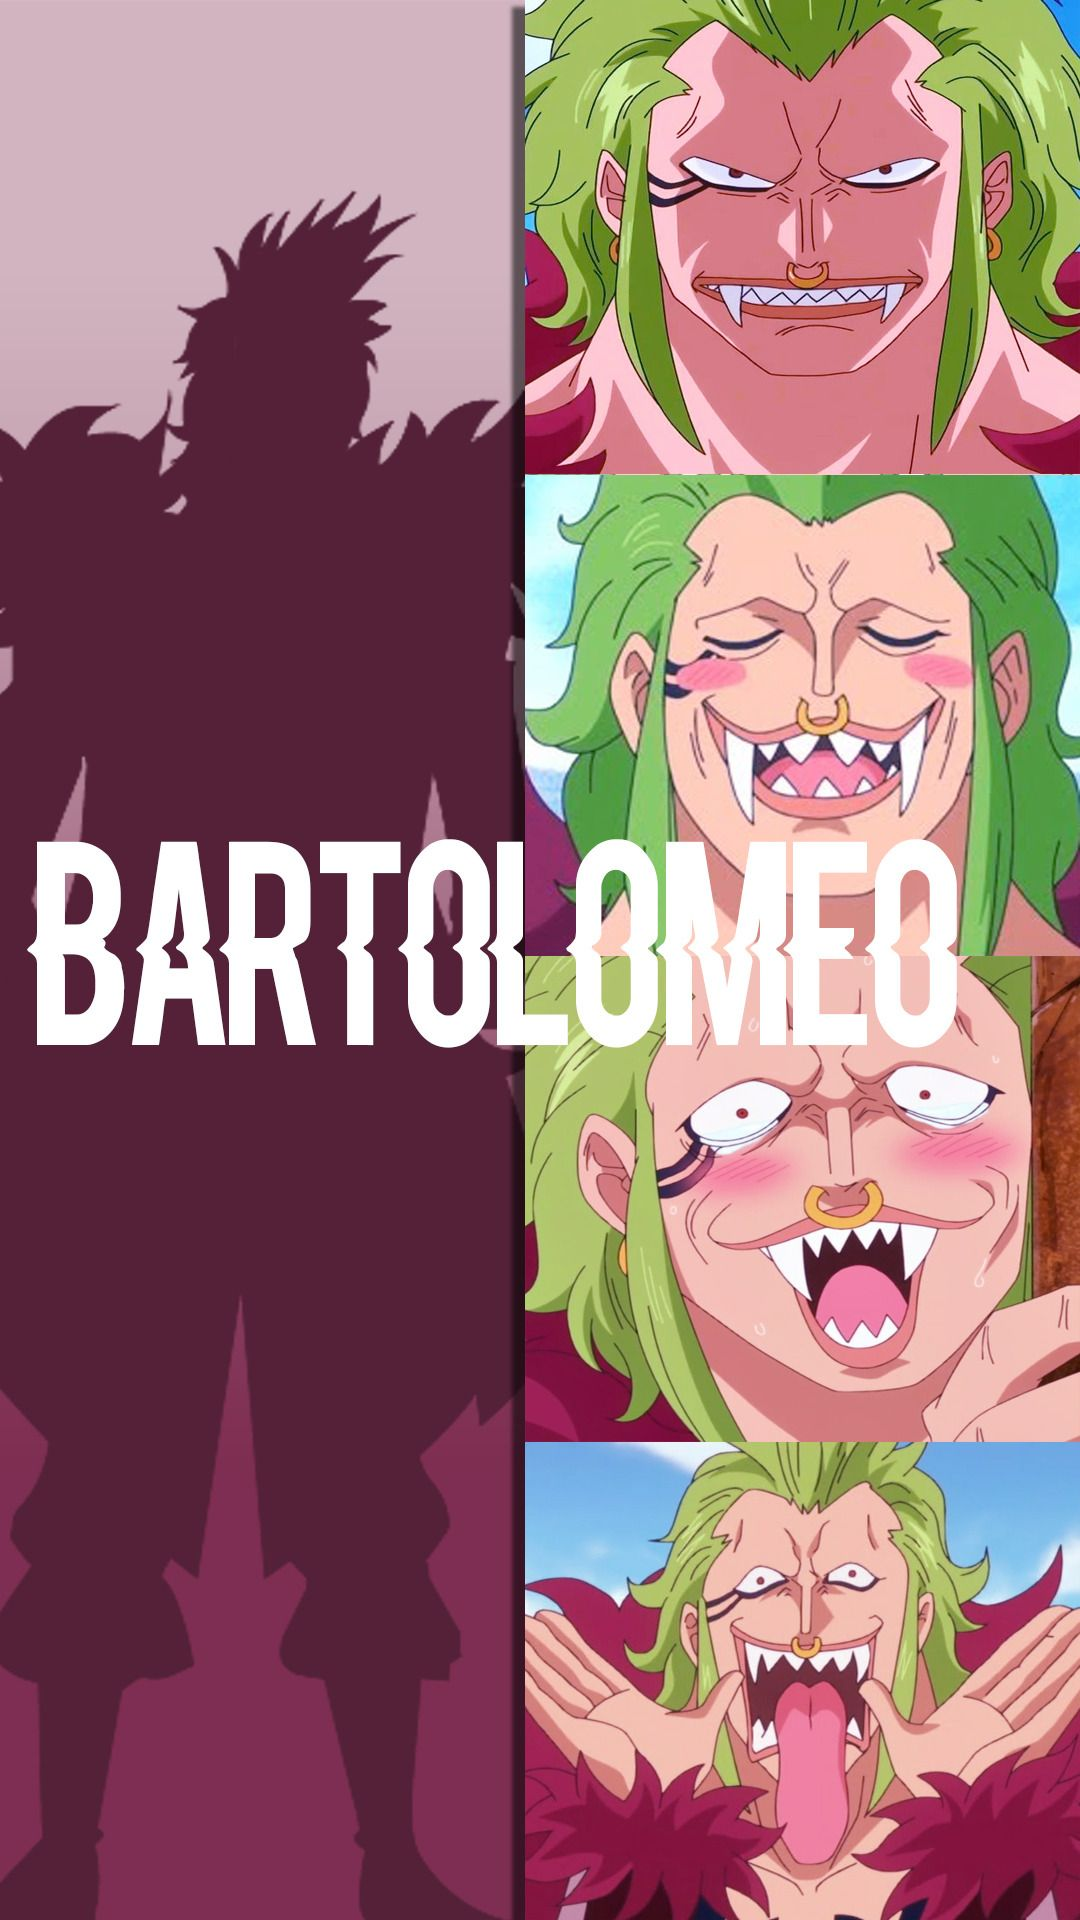 ♡Wallpapers and Lockscreen♡ — ♡ One Piece Boys 2♡ if you downloaded RB or Like...